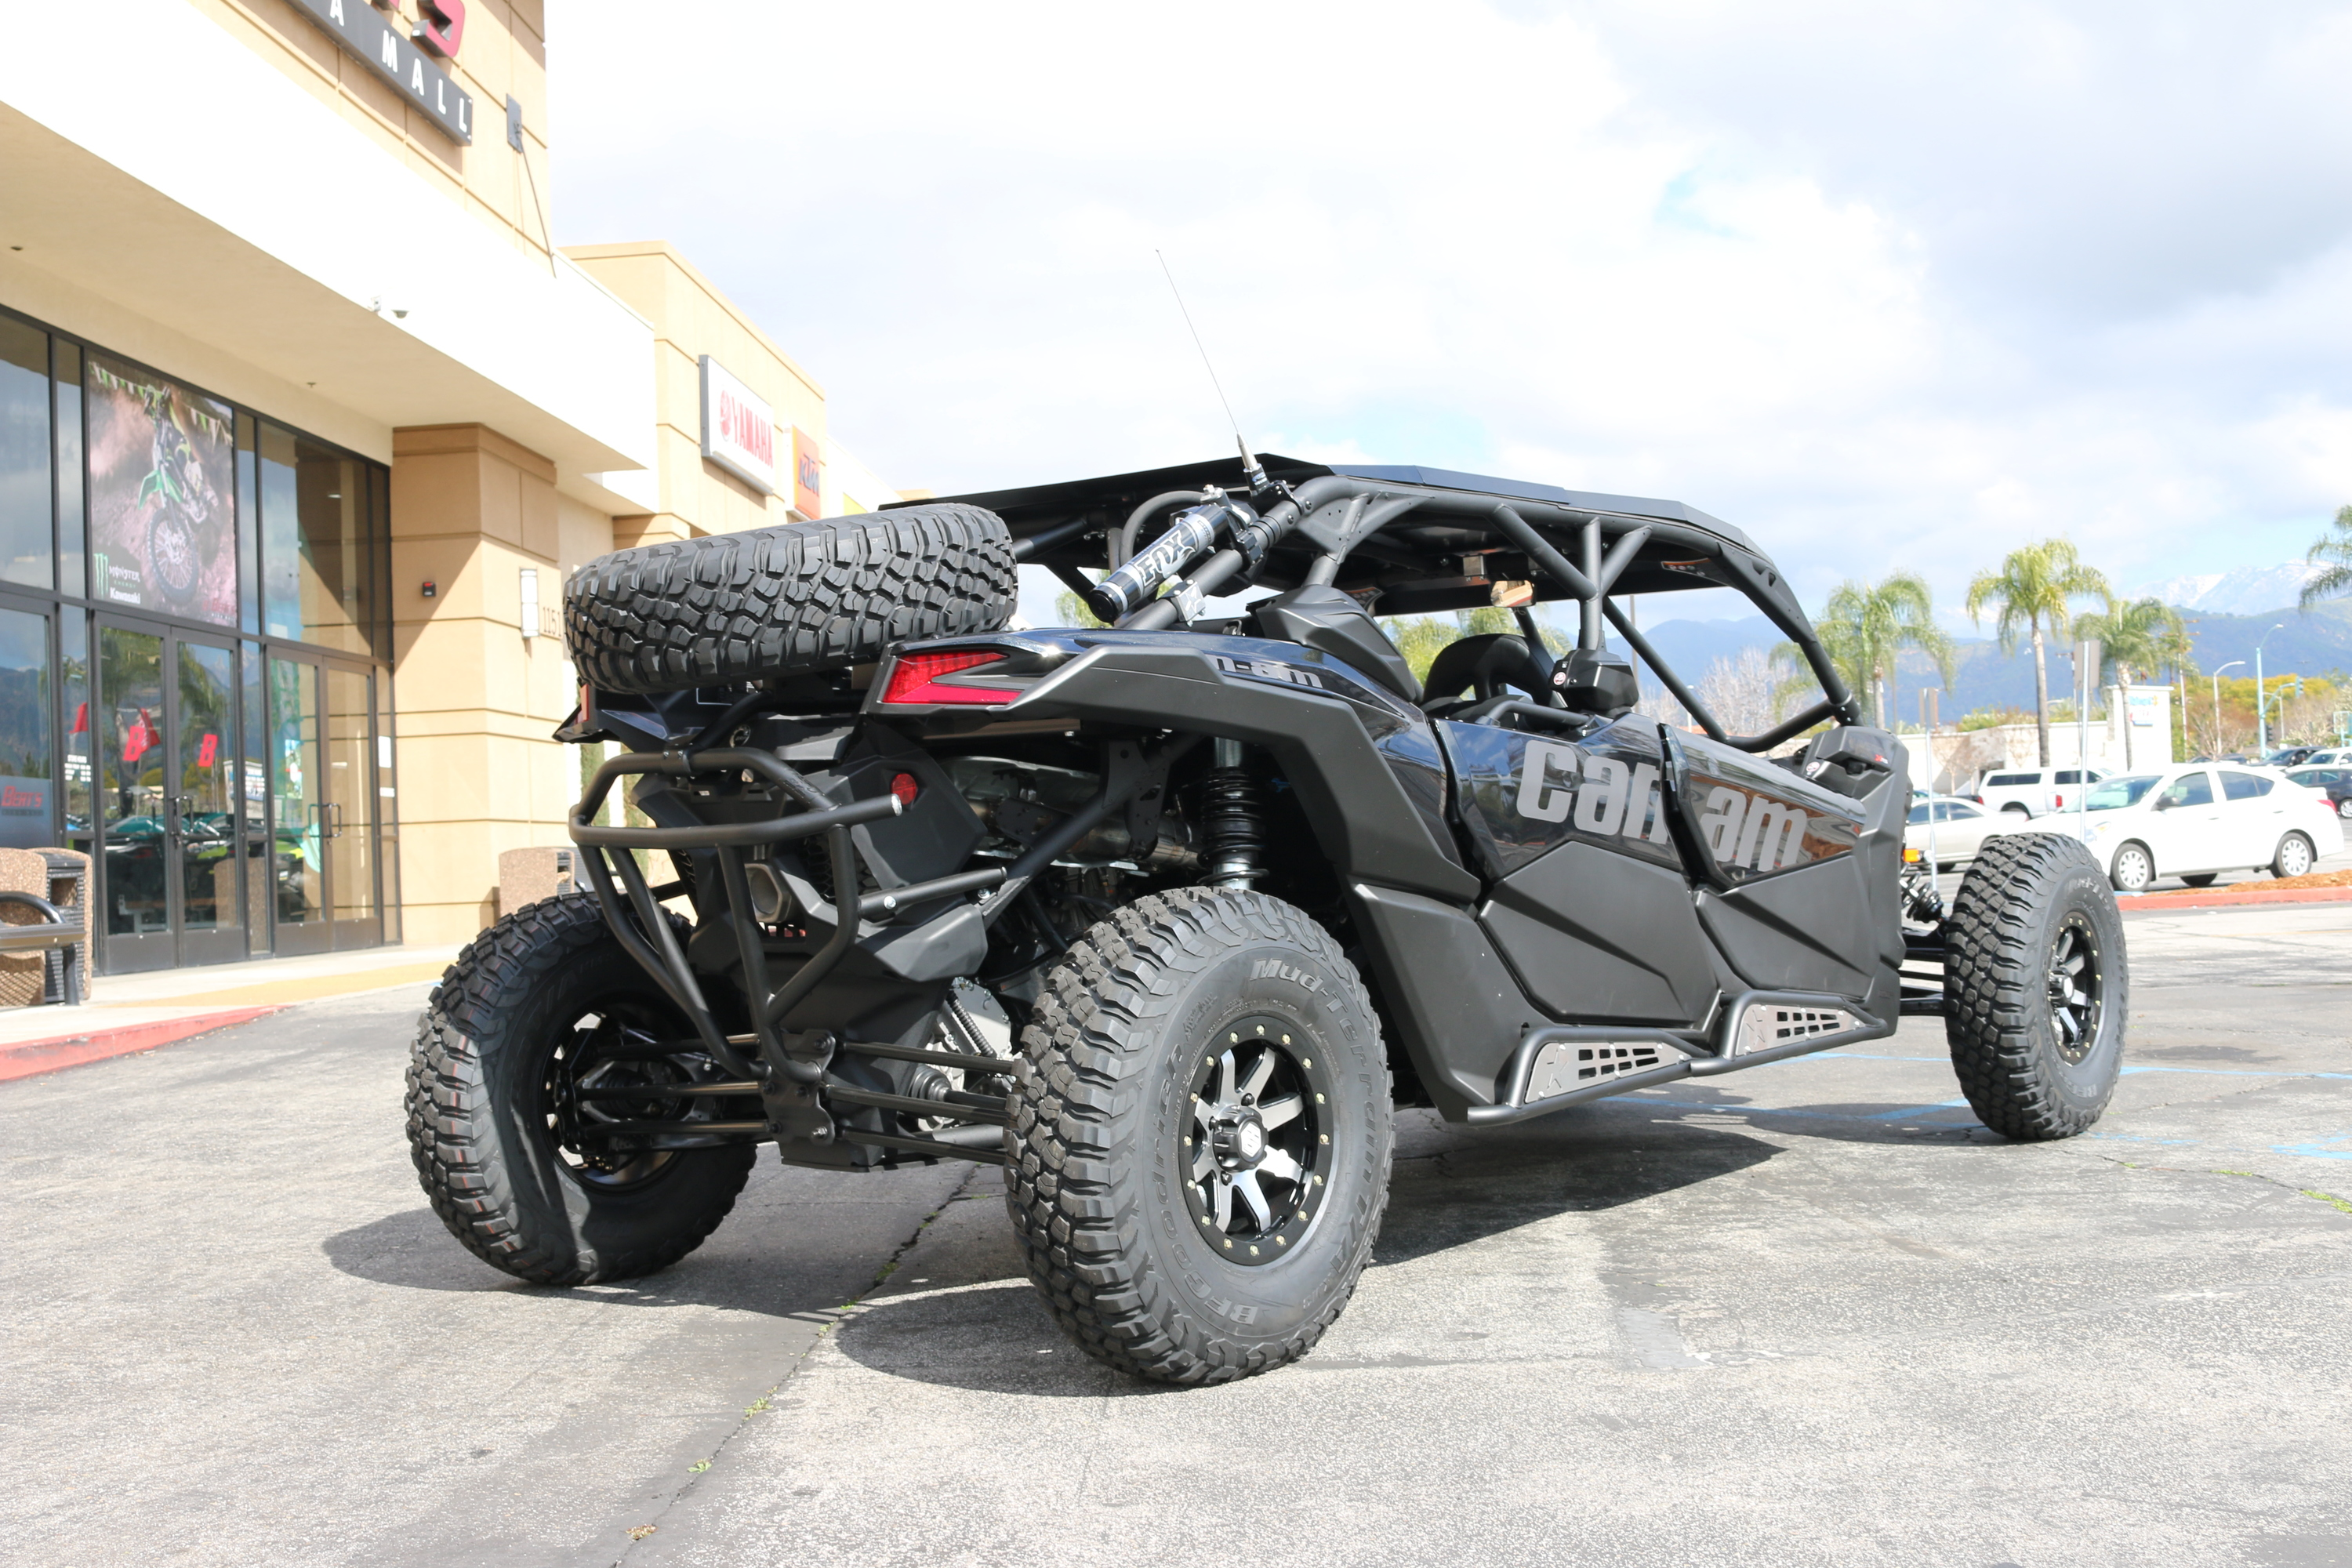 2019 Can Am Maverick X3 Max Xrs Turbo R Black Lonestar Max